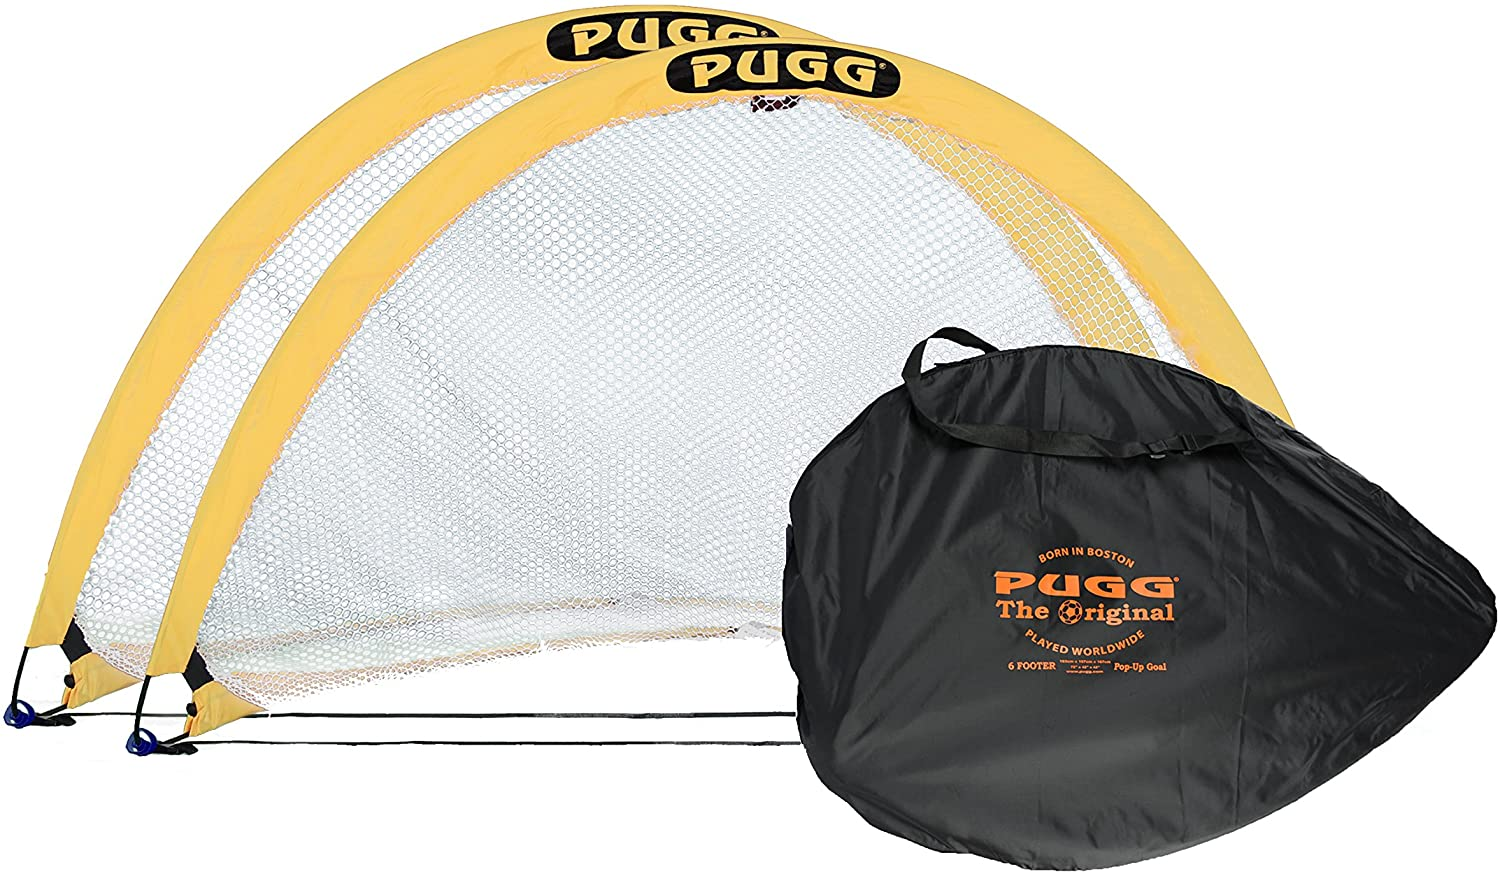 PUGG Portable Soccer Goal Set, 6-Foot